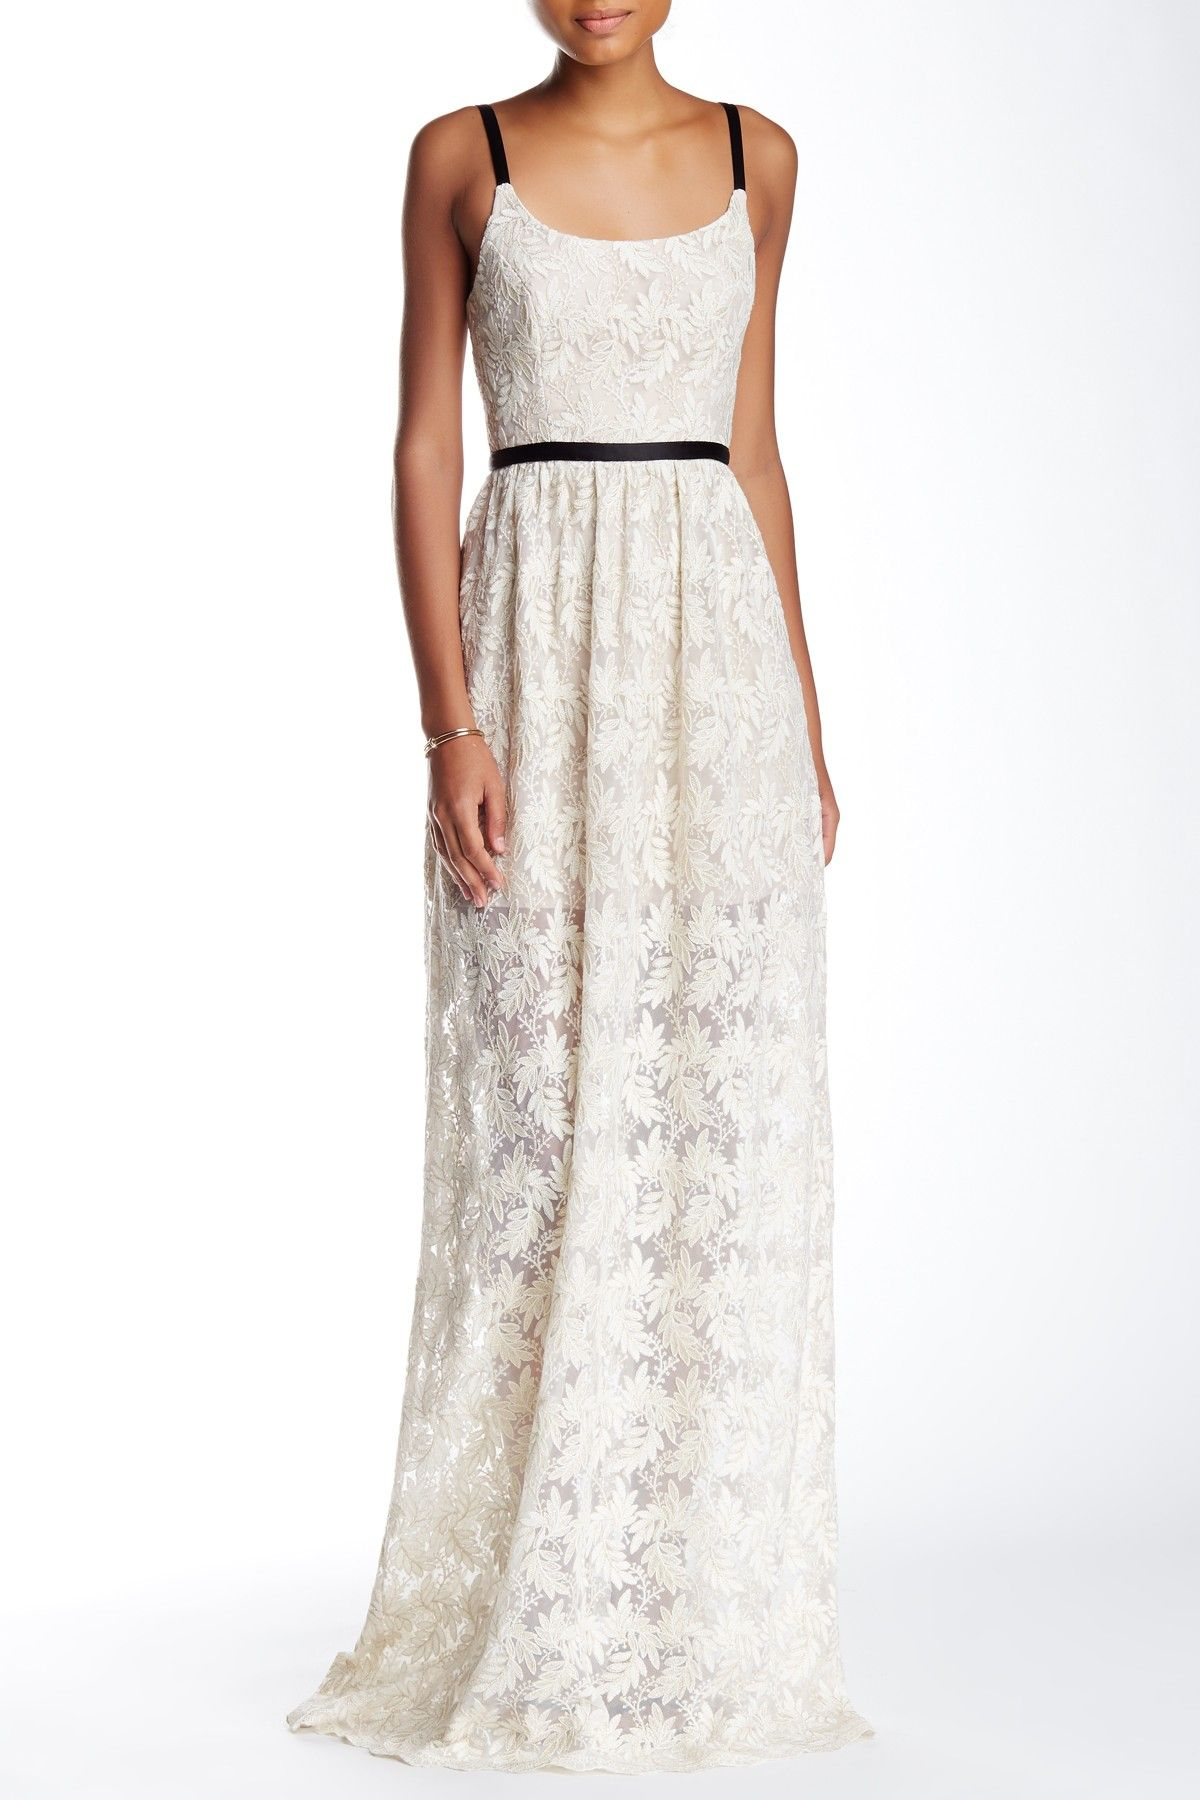 Nordstrom wedding dress  ABS by Allen Schwartz  Lace Gown  Gowns Nordstrom and Clothes